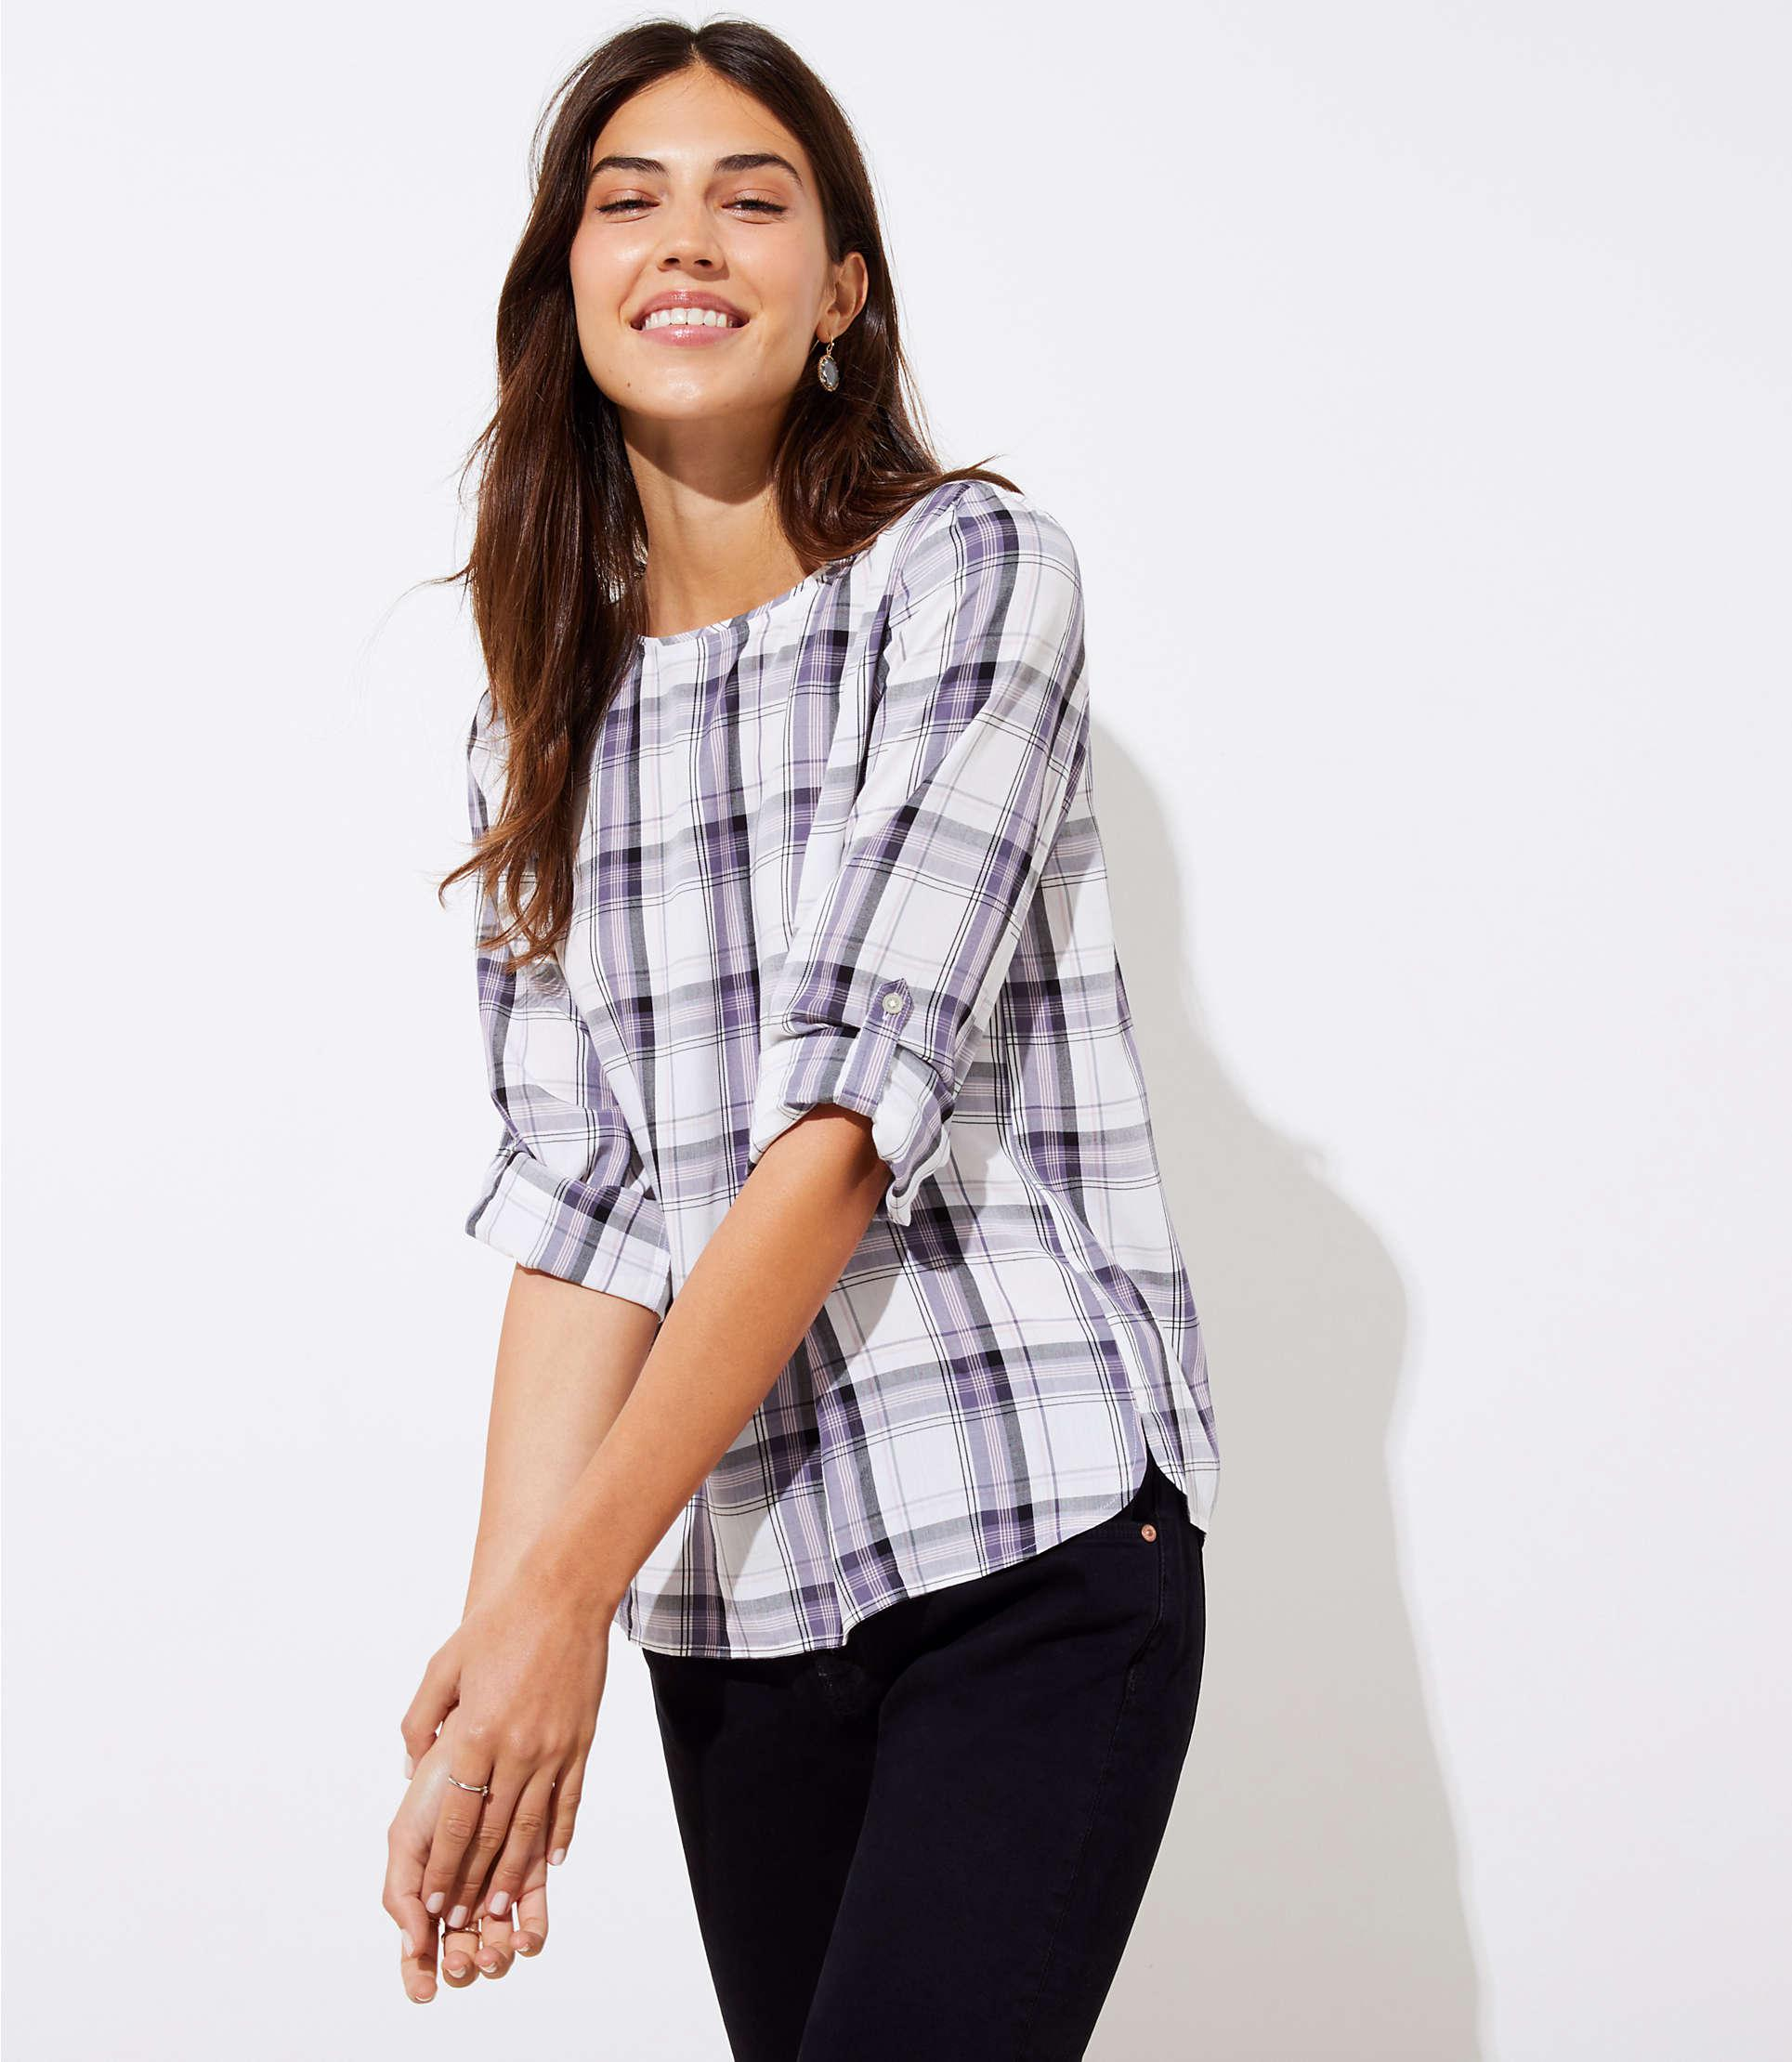 fd355ccf837 LOFT Plaid Tab Sleeve Blouse in White - Lyst